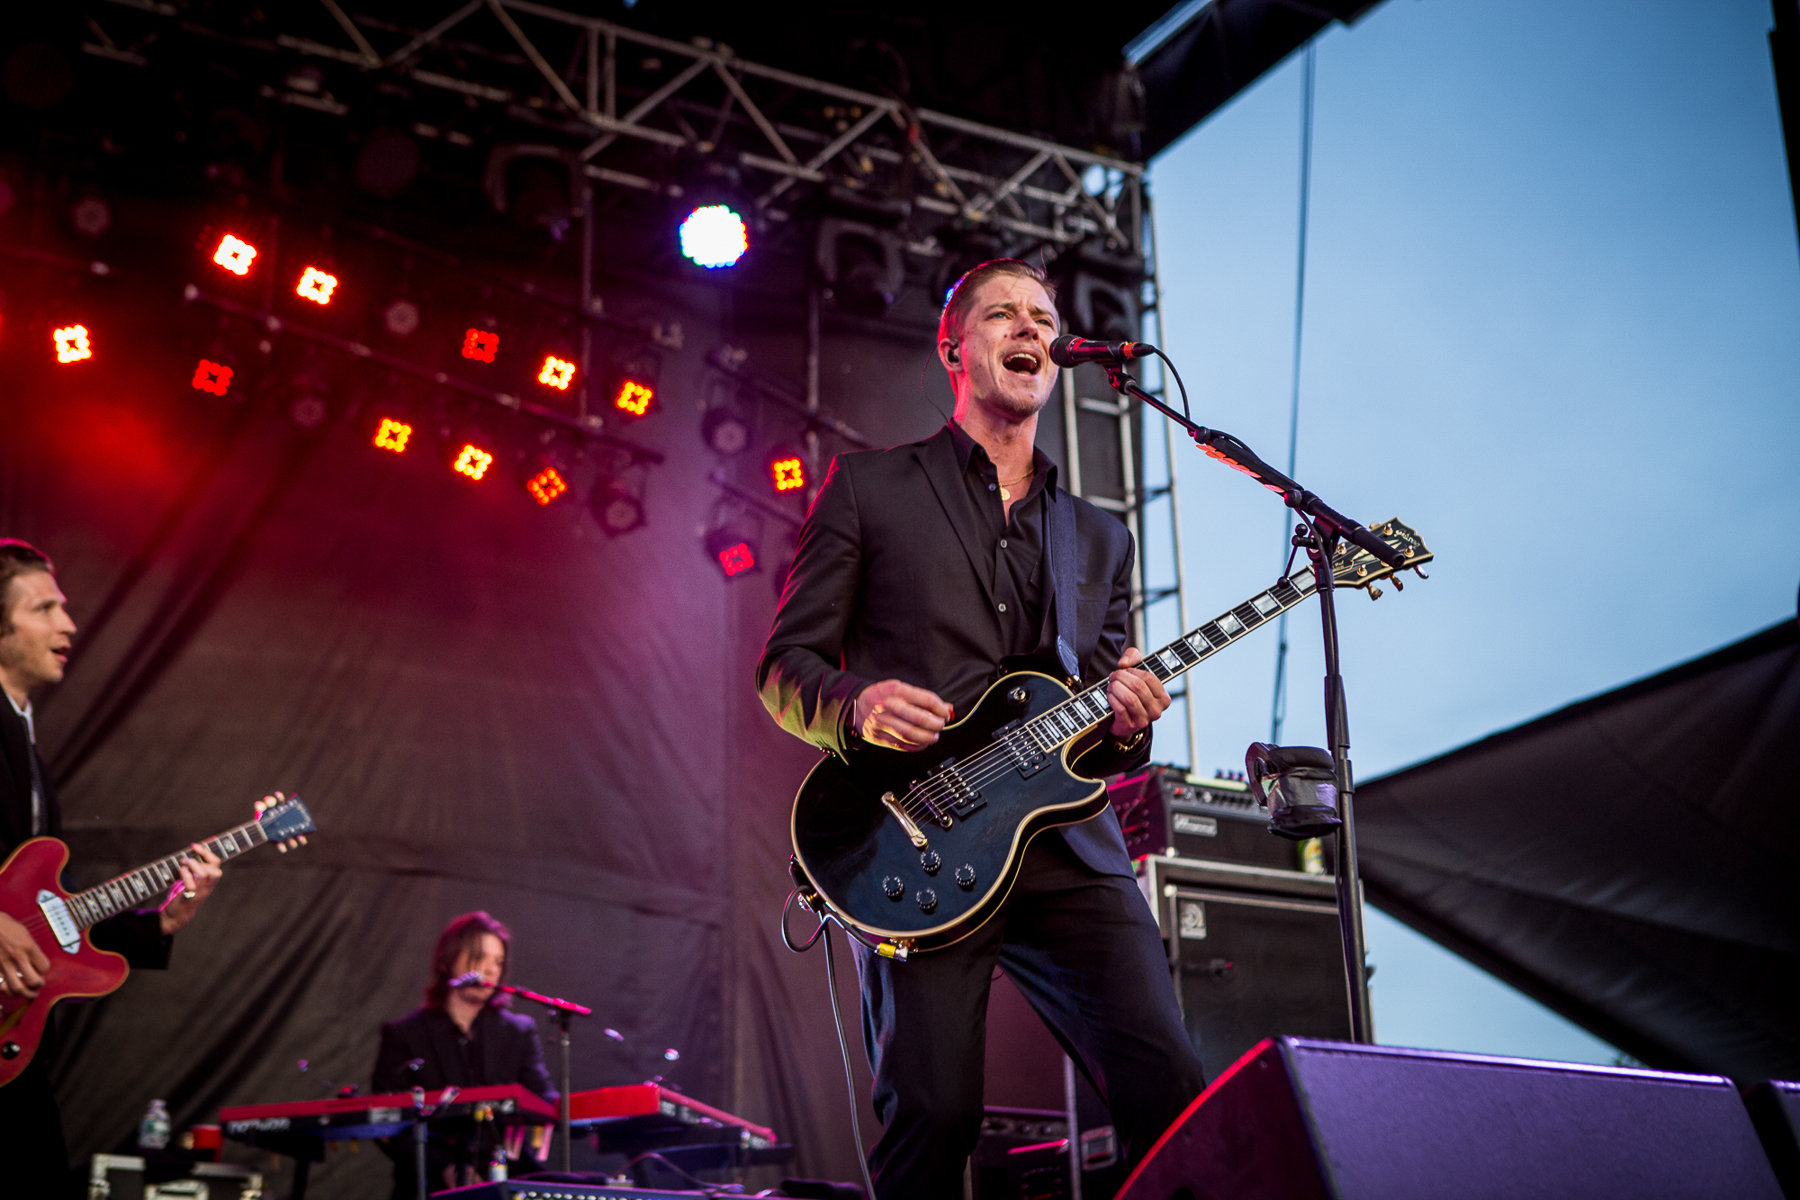 Bansheewerkscom Frivolities Geetar 30 Best Things We Saw At Governors Ball 2014 Rolling Stone Dressed Bearer Of New York Rock Nostalgia Interpol